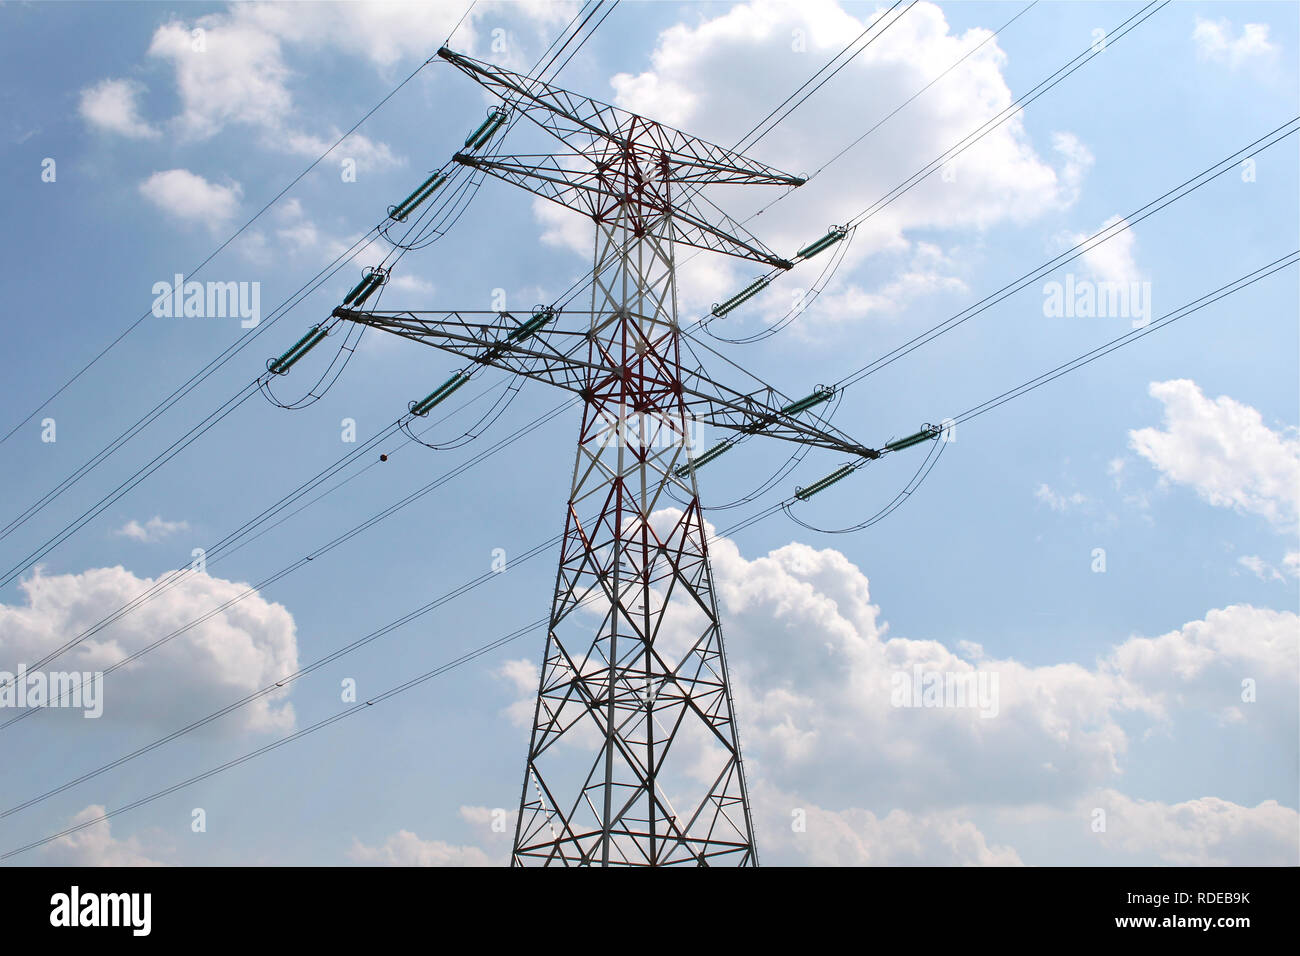 High voltage pylon for the distribution of electricity. - Stock Image